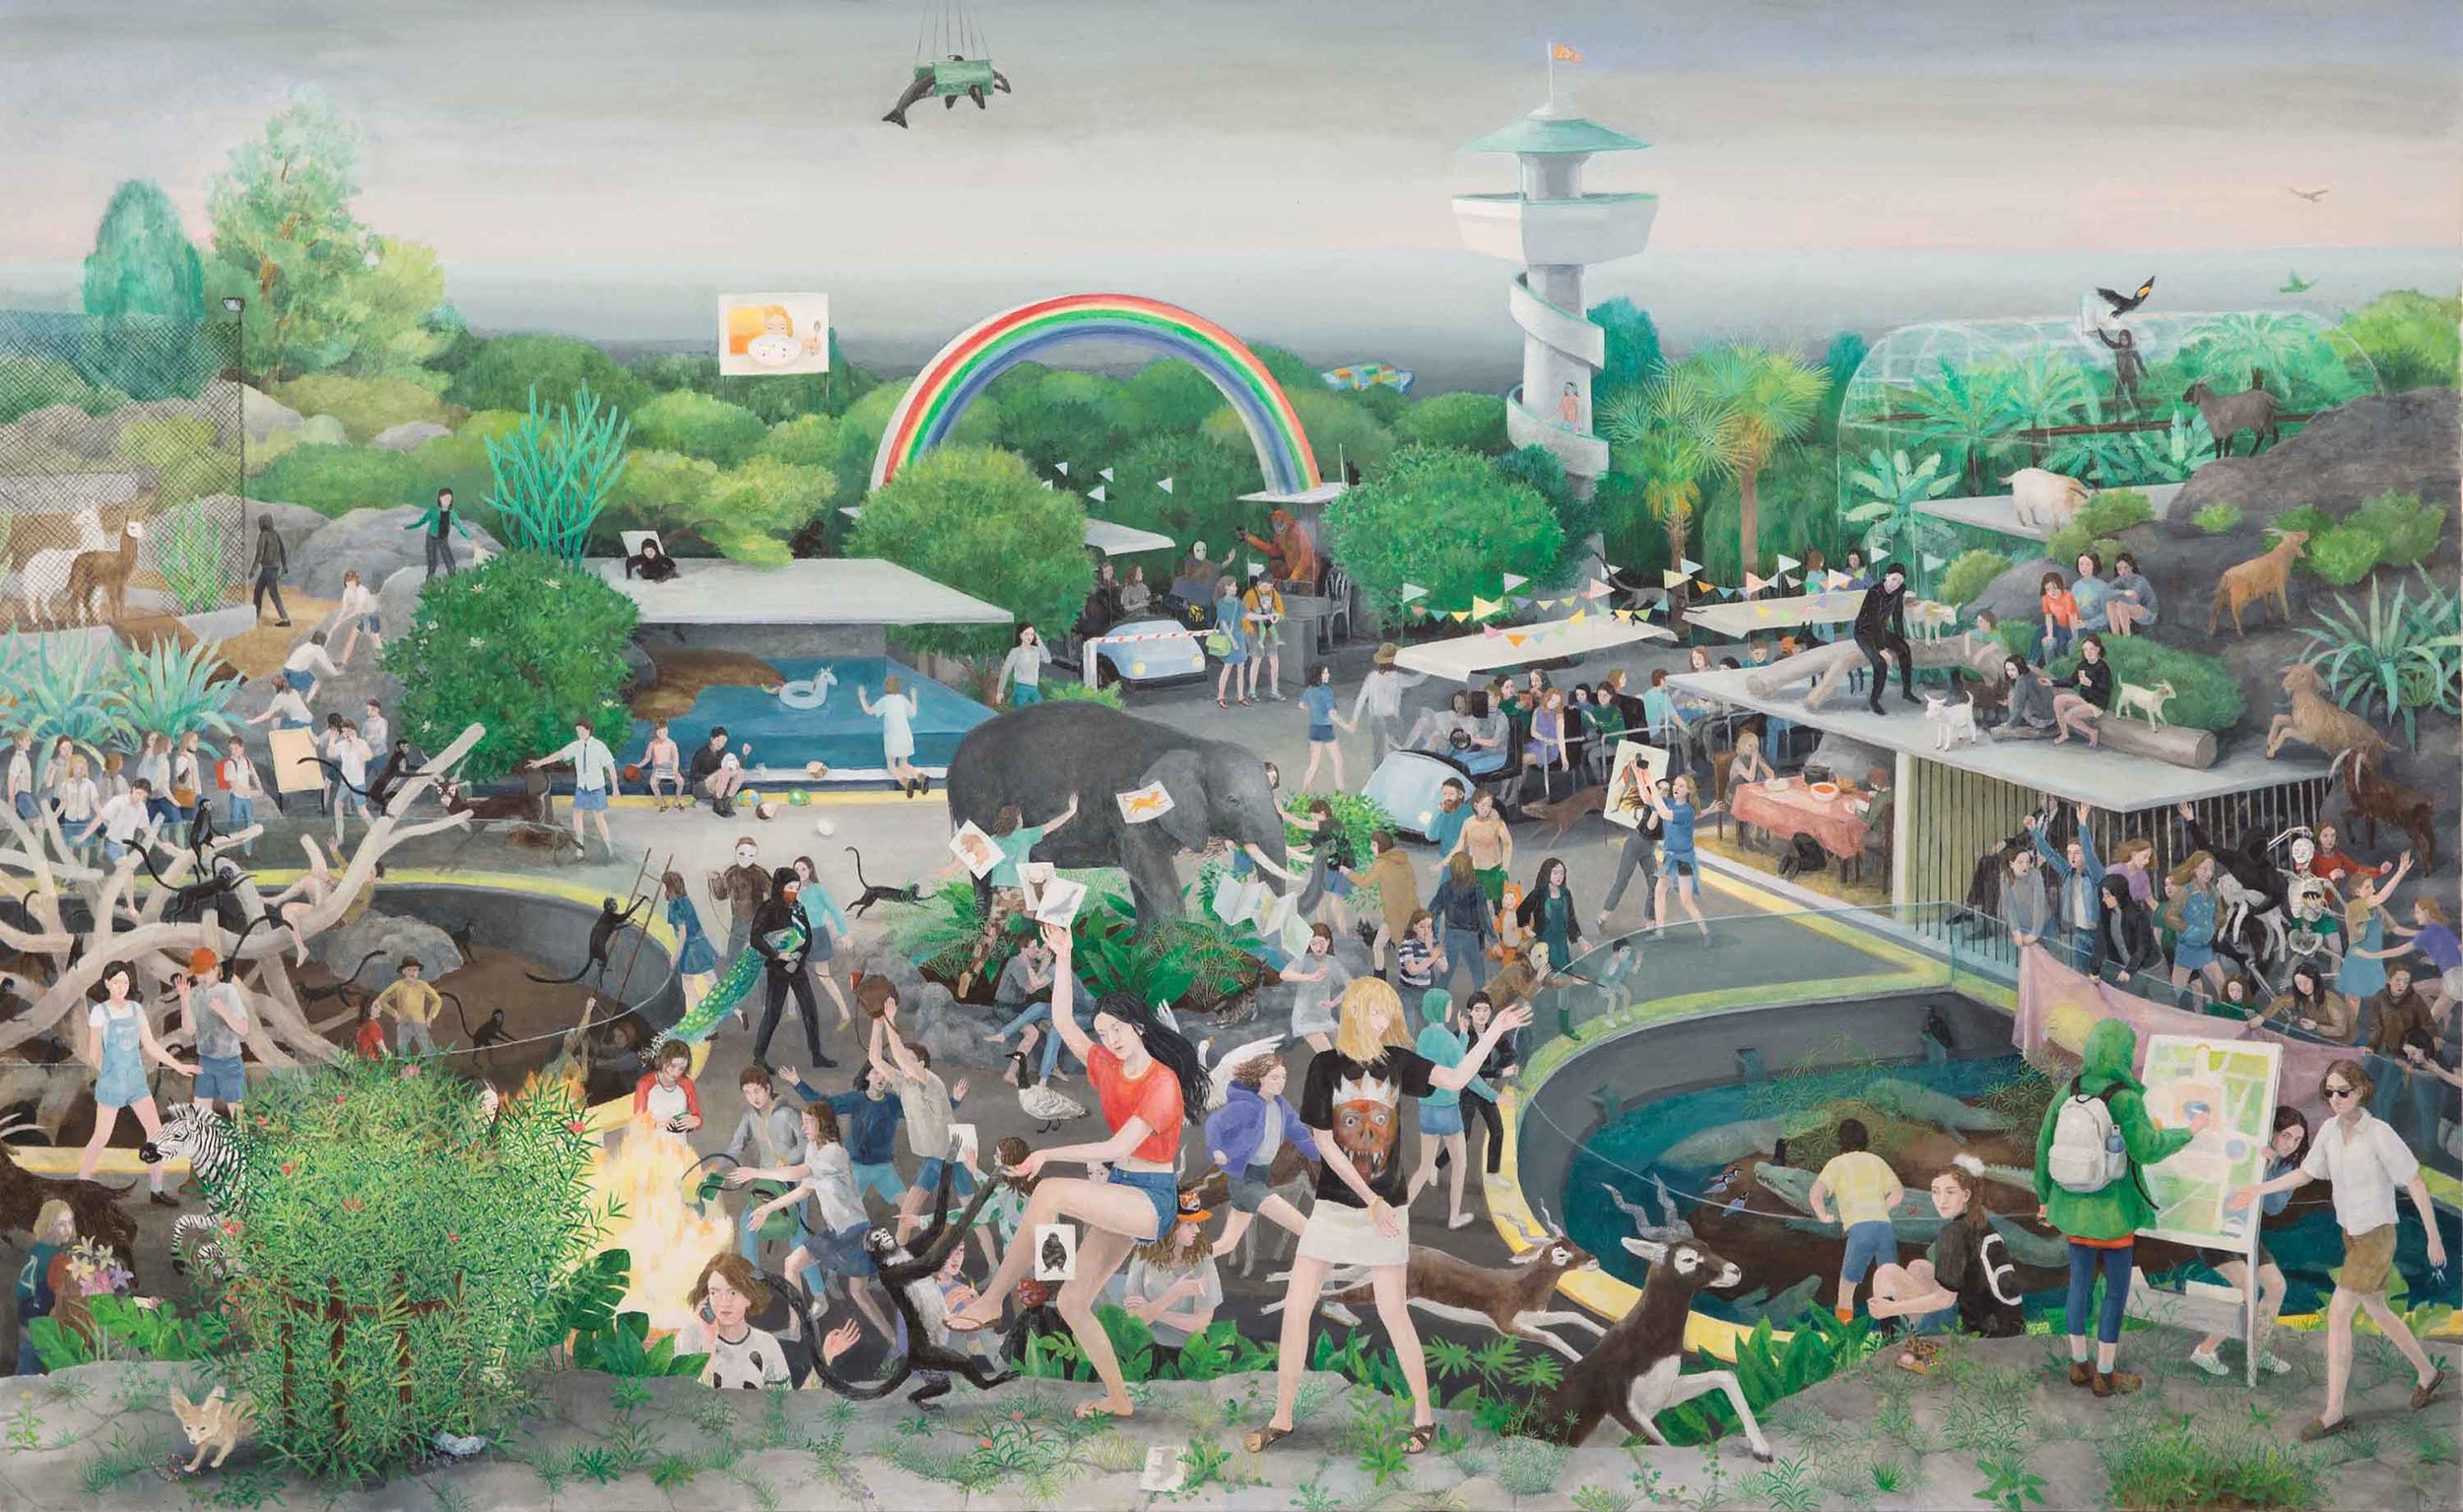 The Last Day of the Zoo, 170x235 cm, Oil on Canvas